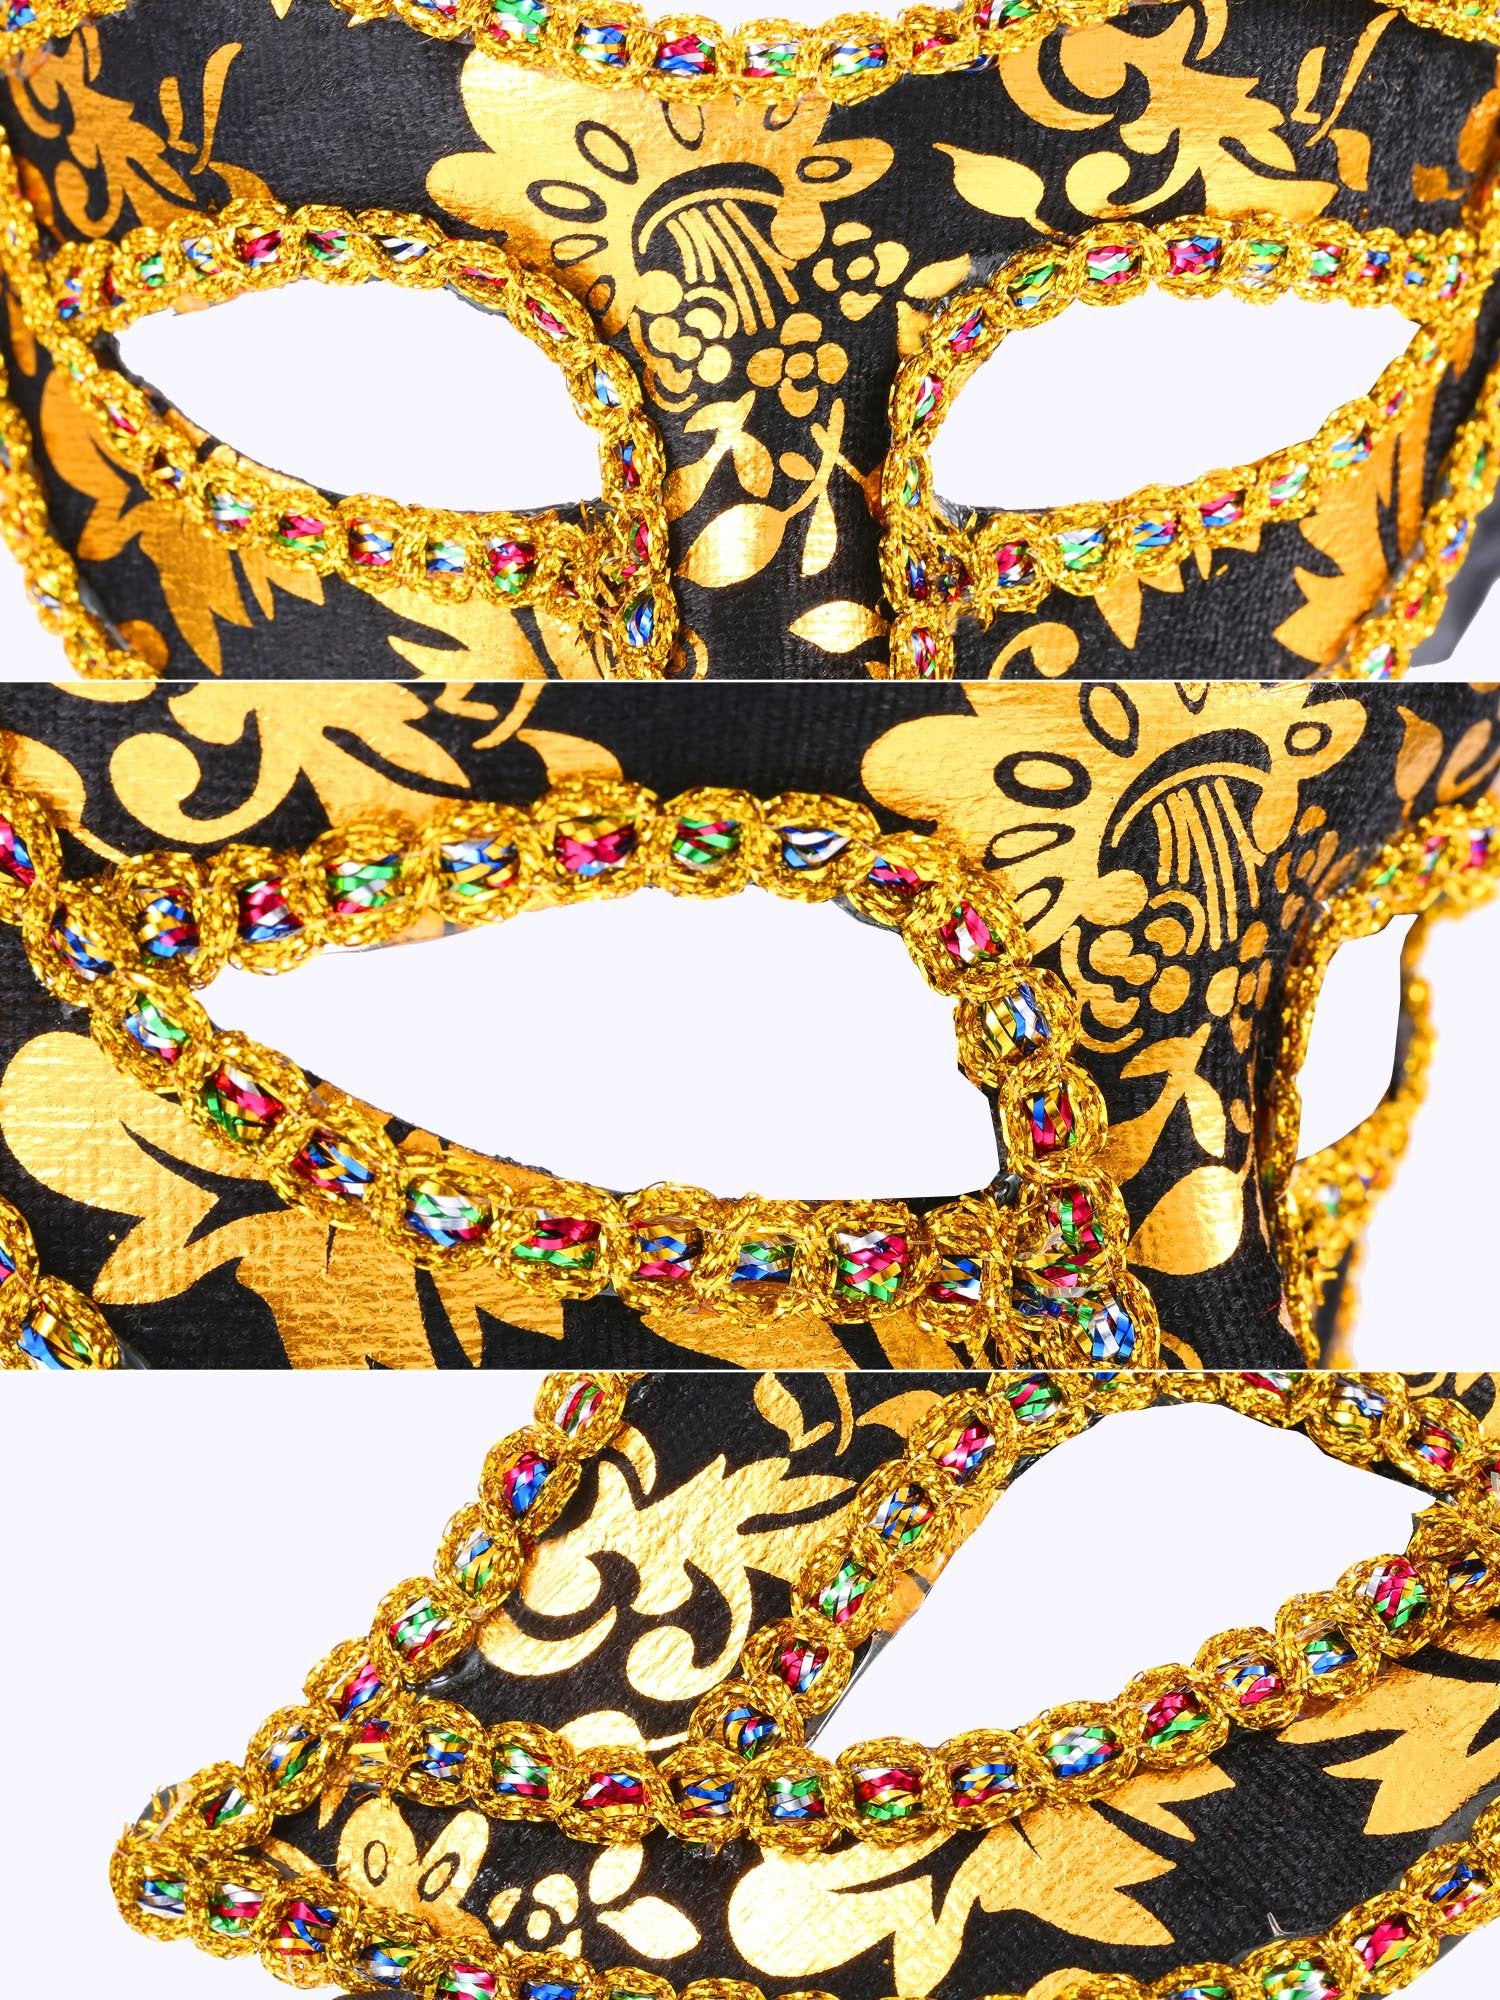 12 Pieces Half Mardi Gras Masquerade Mask Venetian Masks Set for Carnival Prom Ball Fancy Dress Party Supplies (Style 2)